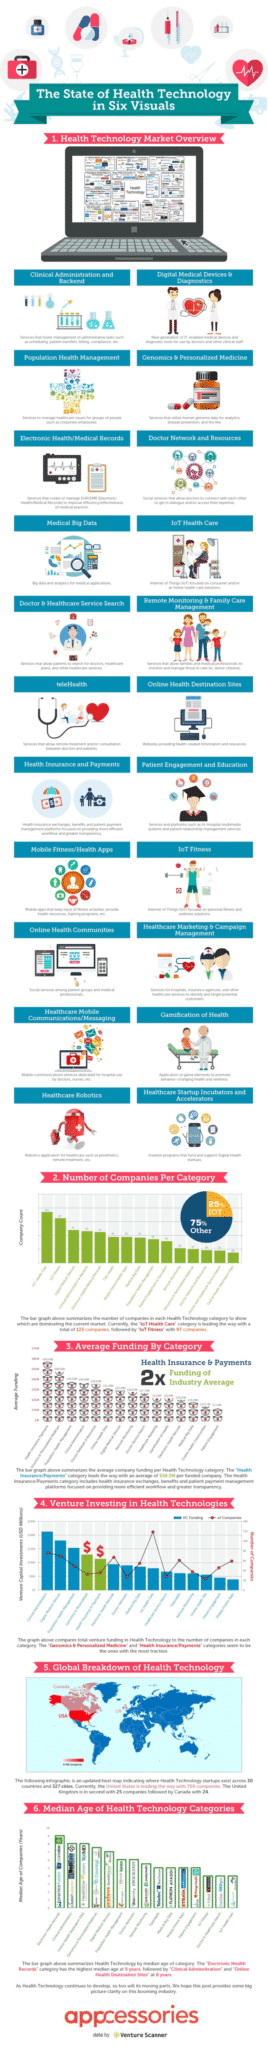 the state of health technology in six visuals - The state of health technology in six visuals